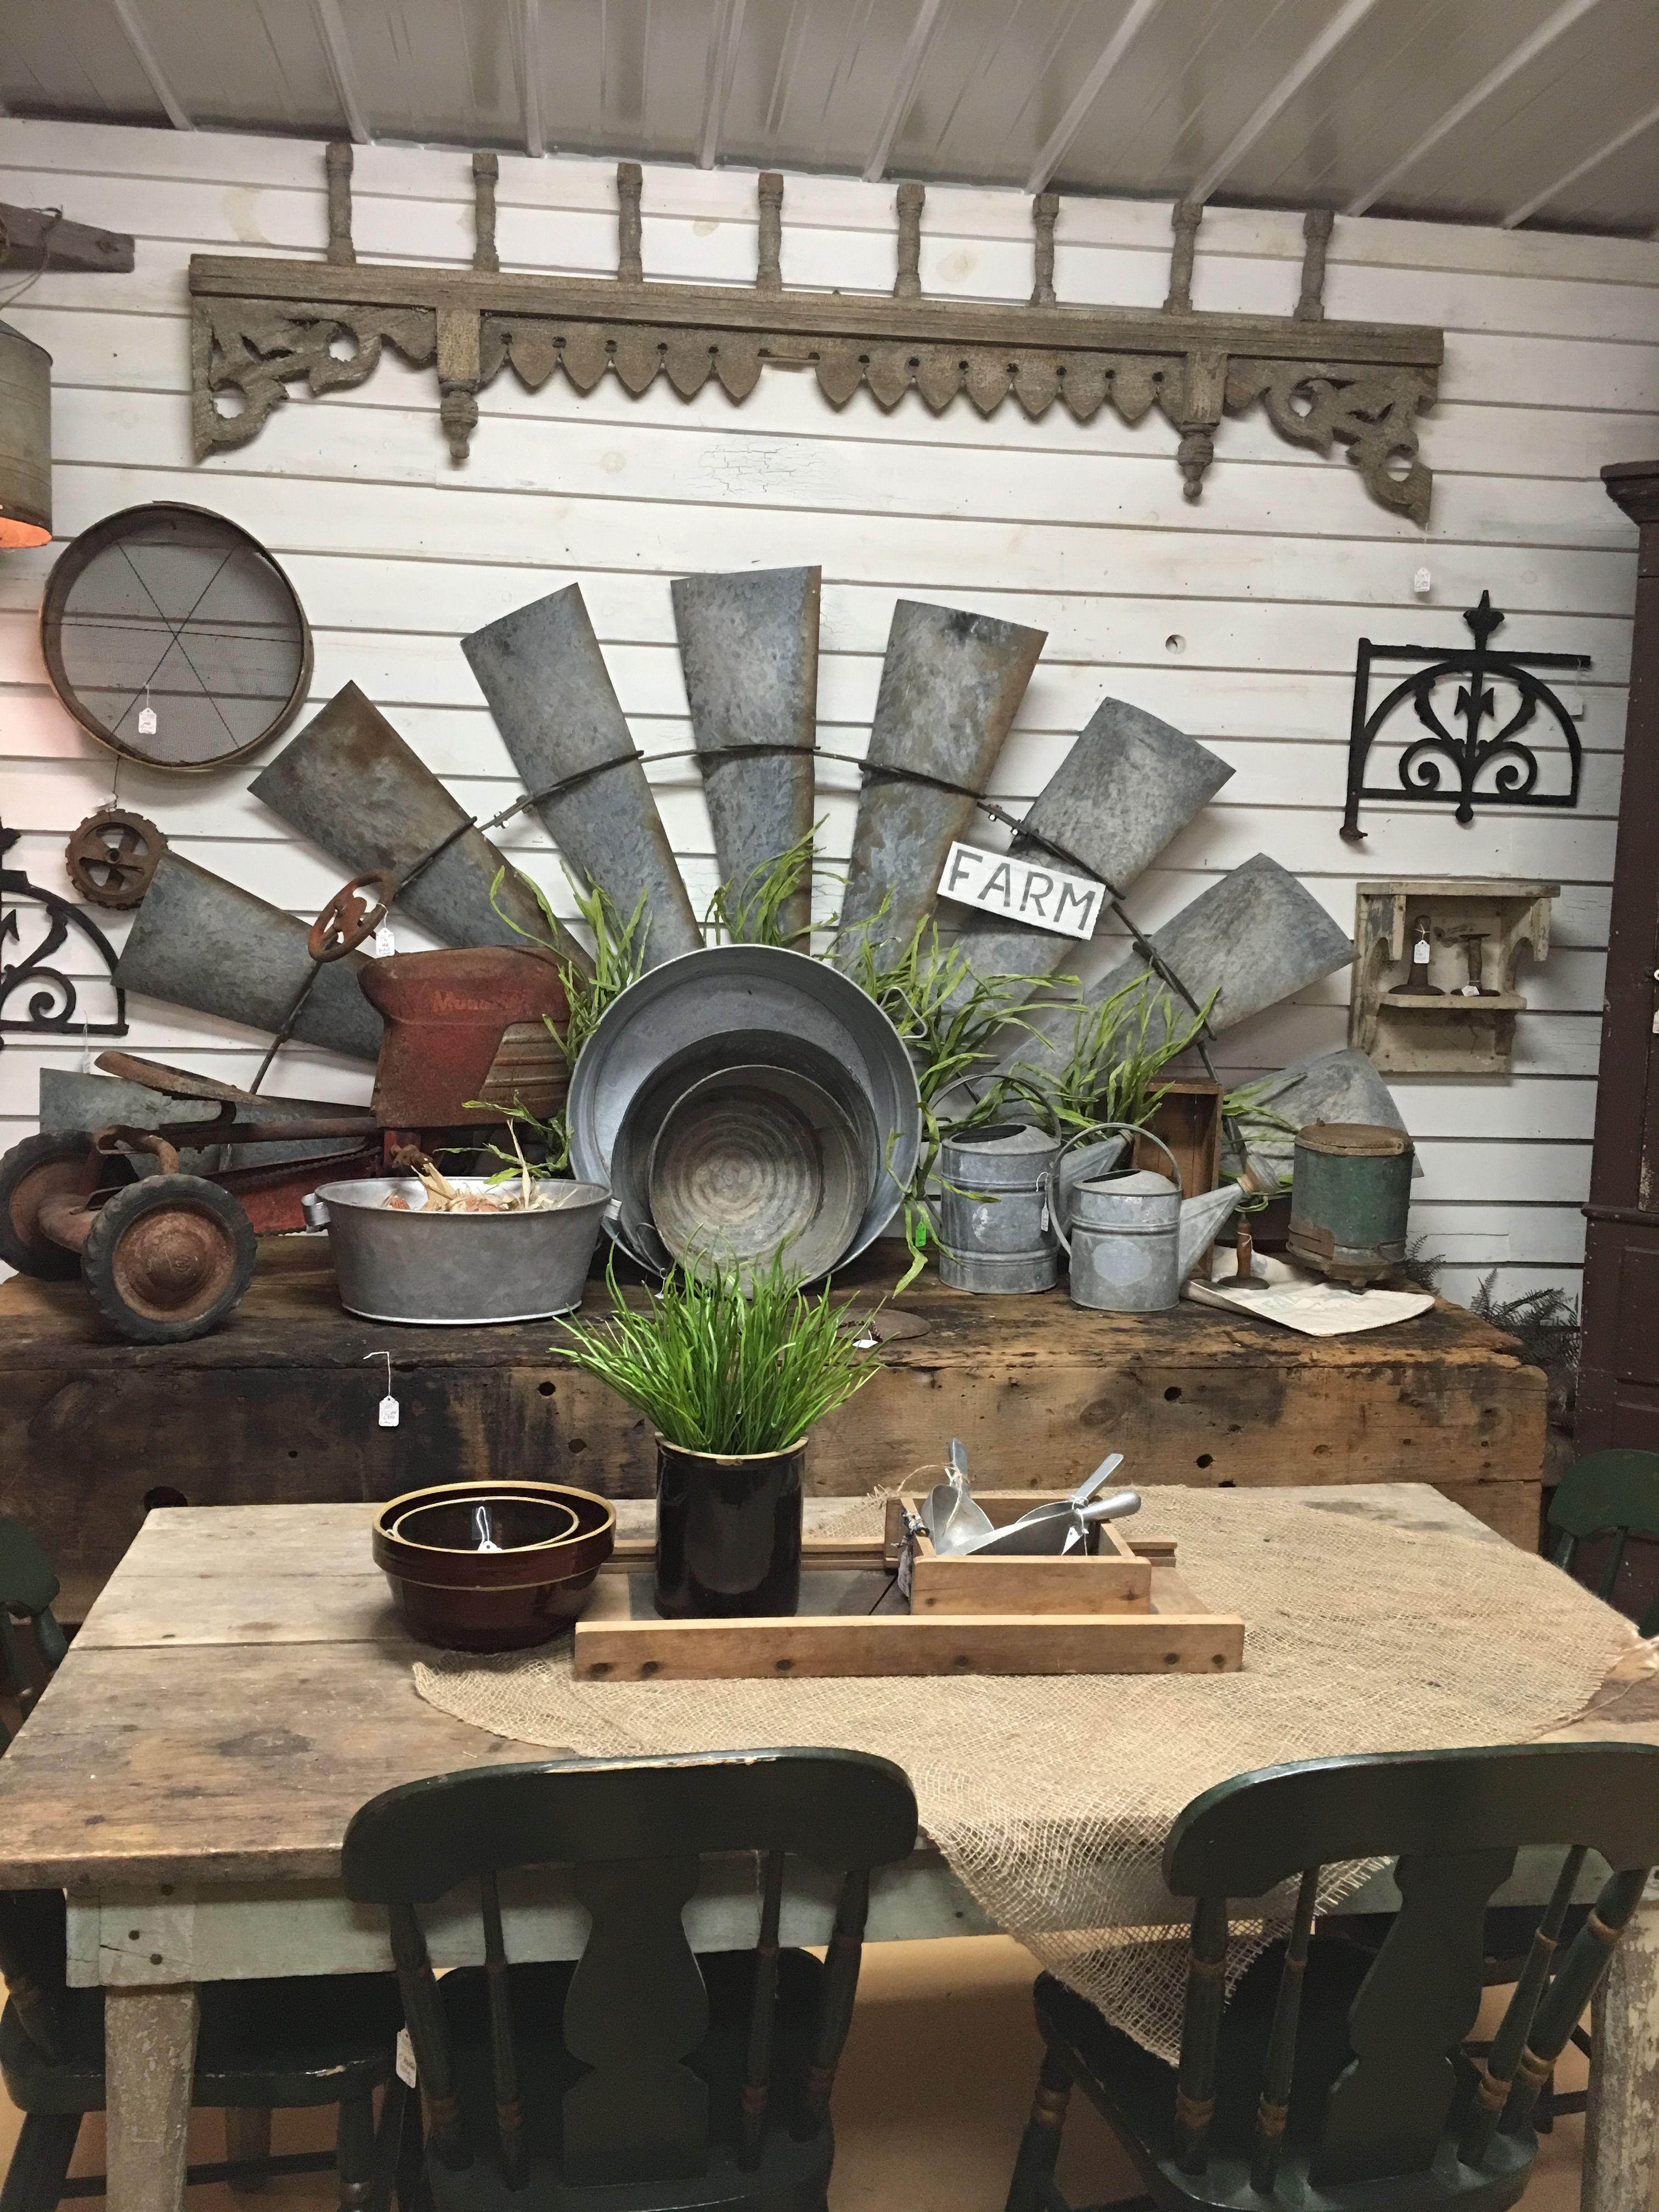 Farmhouse decorating using old galvanized rusty gold windmill blades